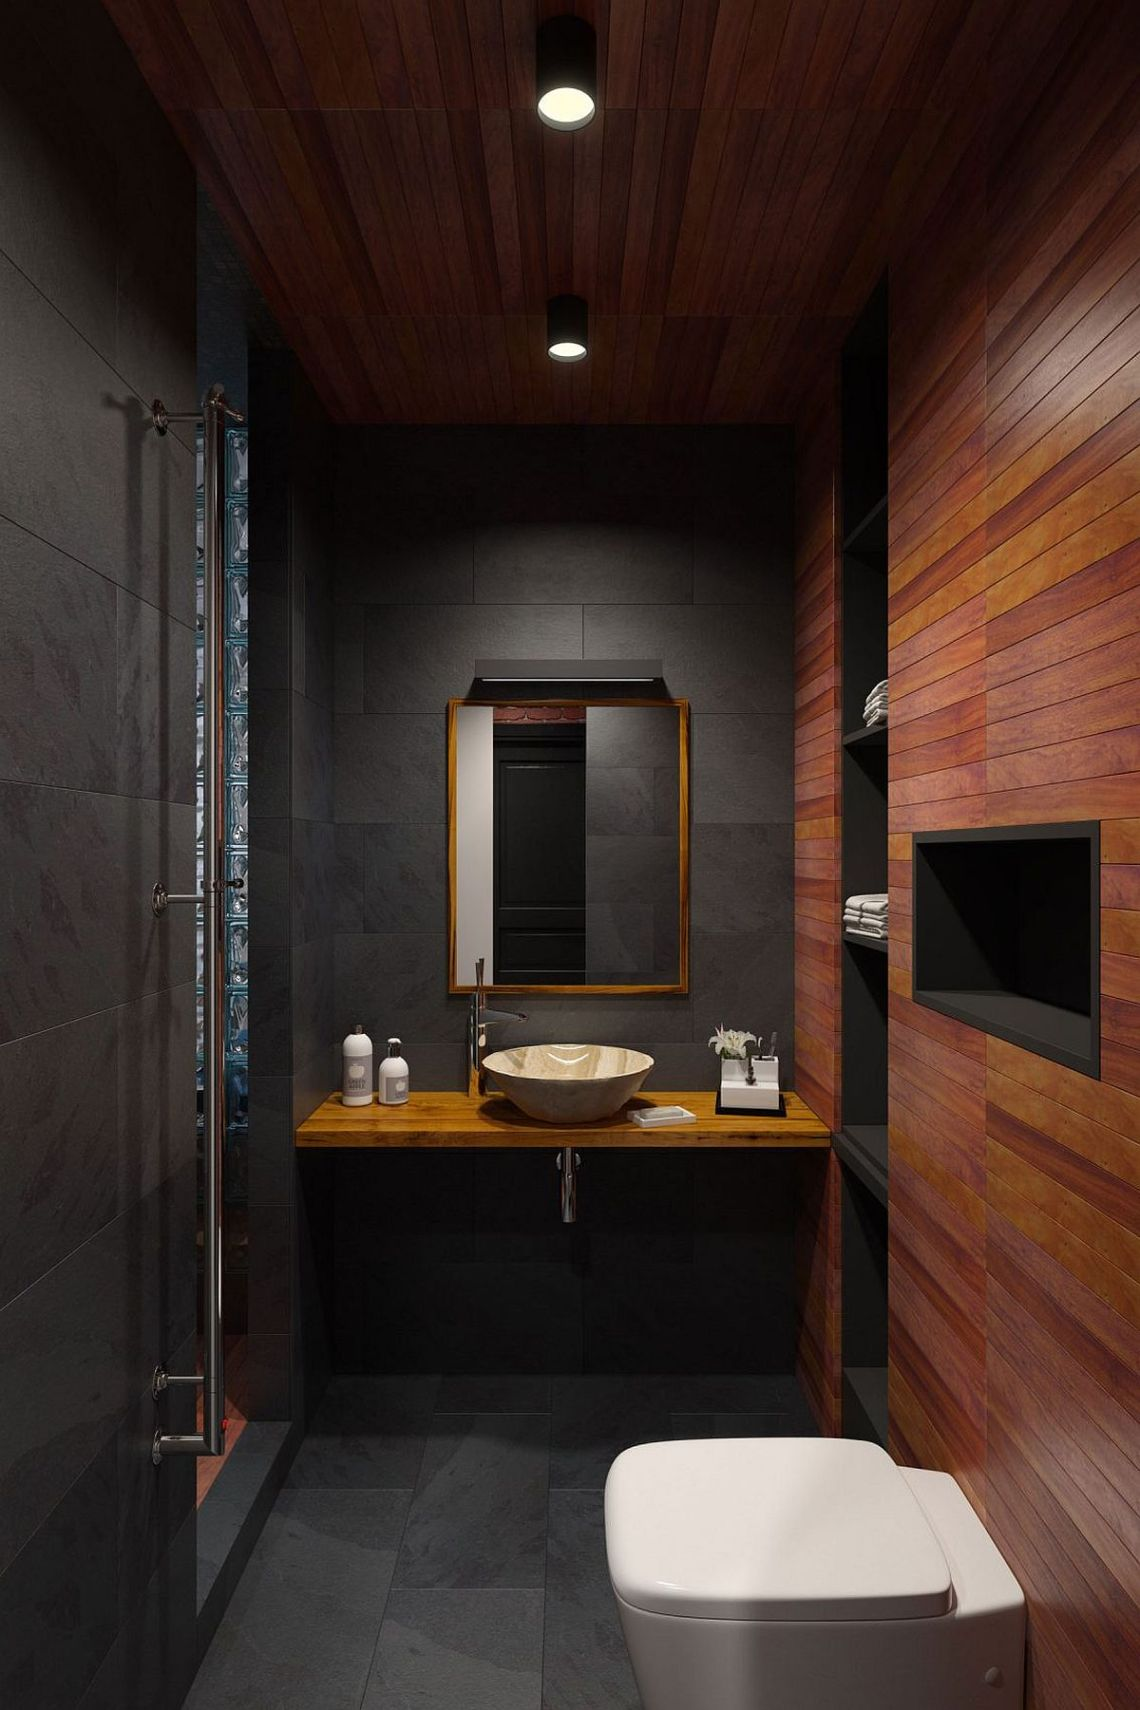 25 Small Apartment Bathroom Ideas that Maximize Space and ...